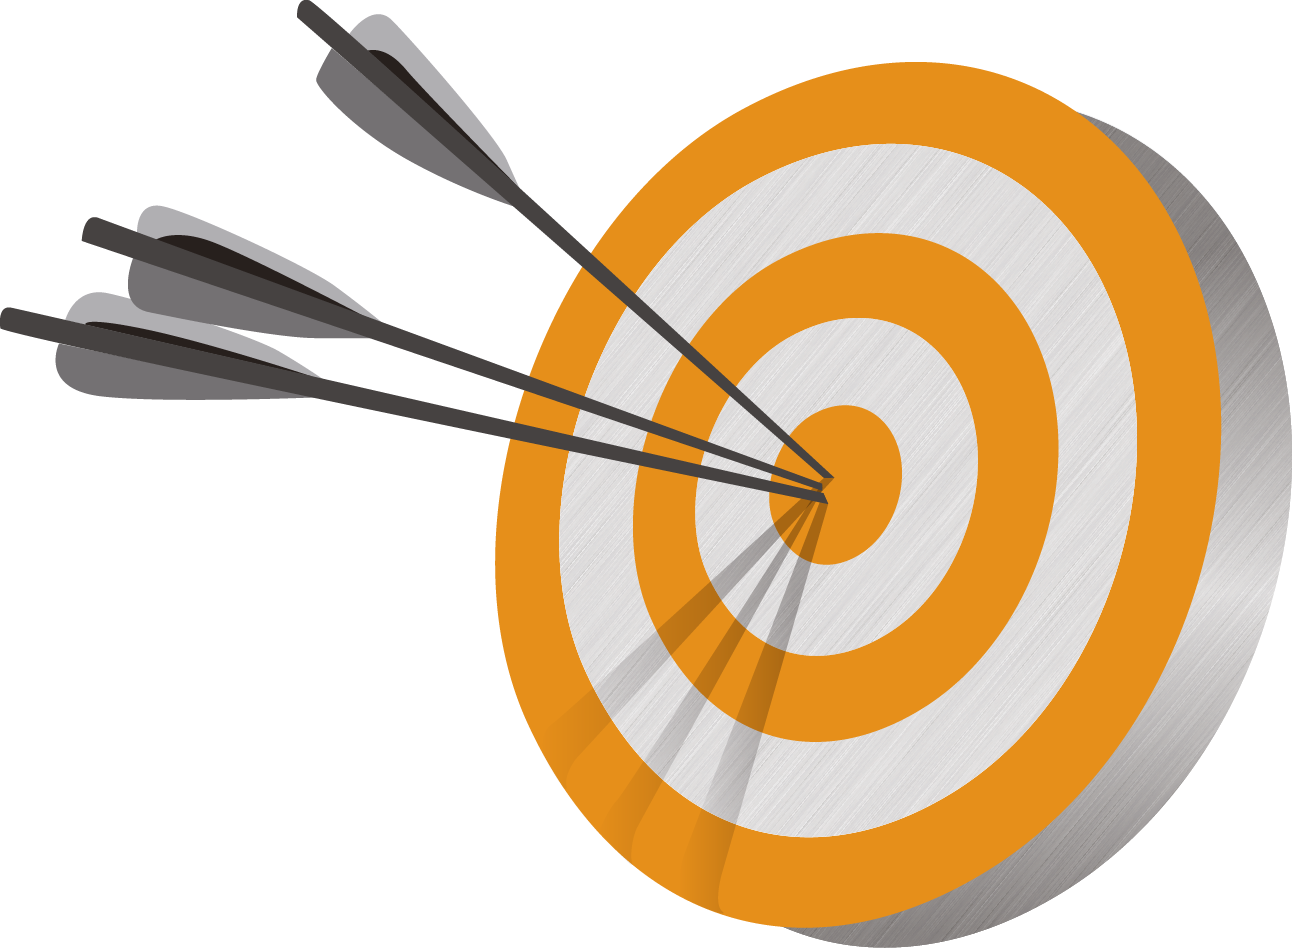 Seo Target Icon Png #2278 - Free Icons and PNG Backgrounds